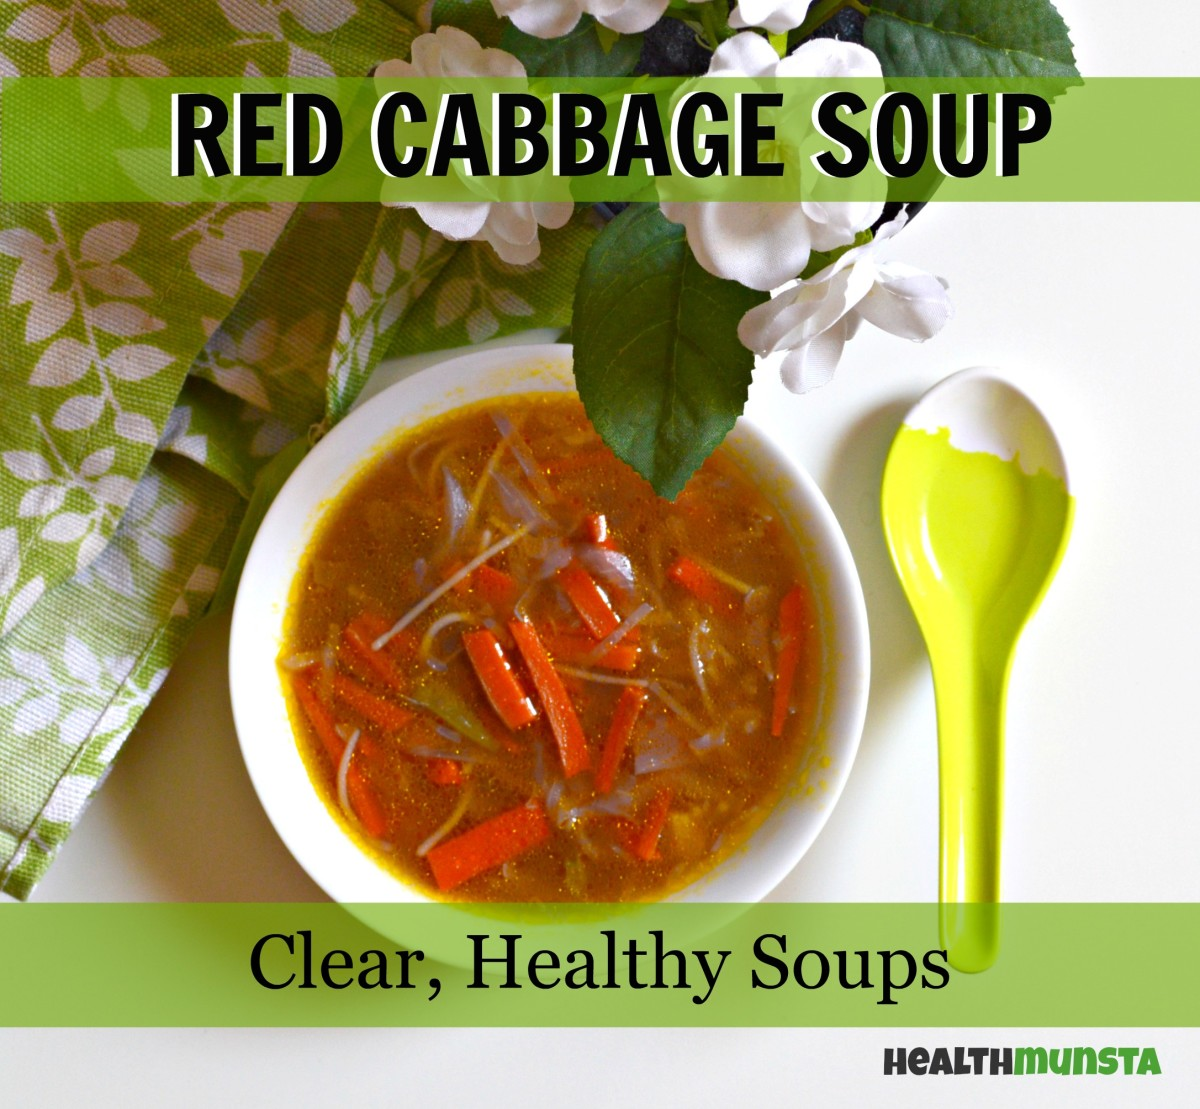 A light yet hearty red cabbage soup recipe with carrots and french beans.